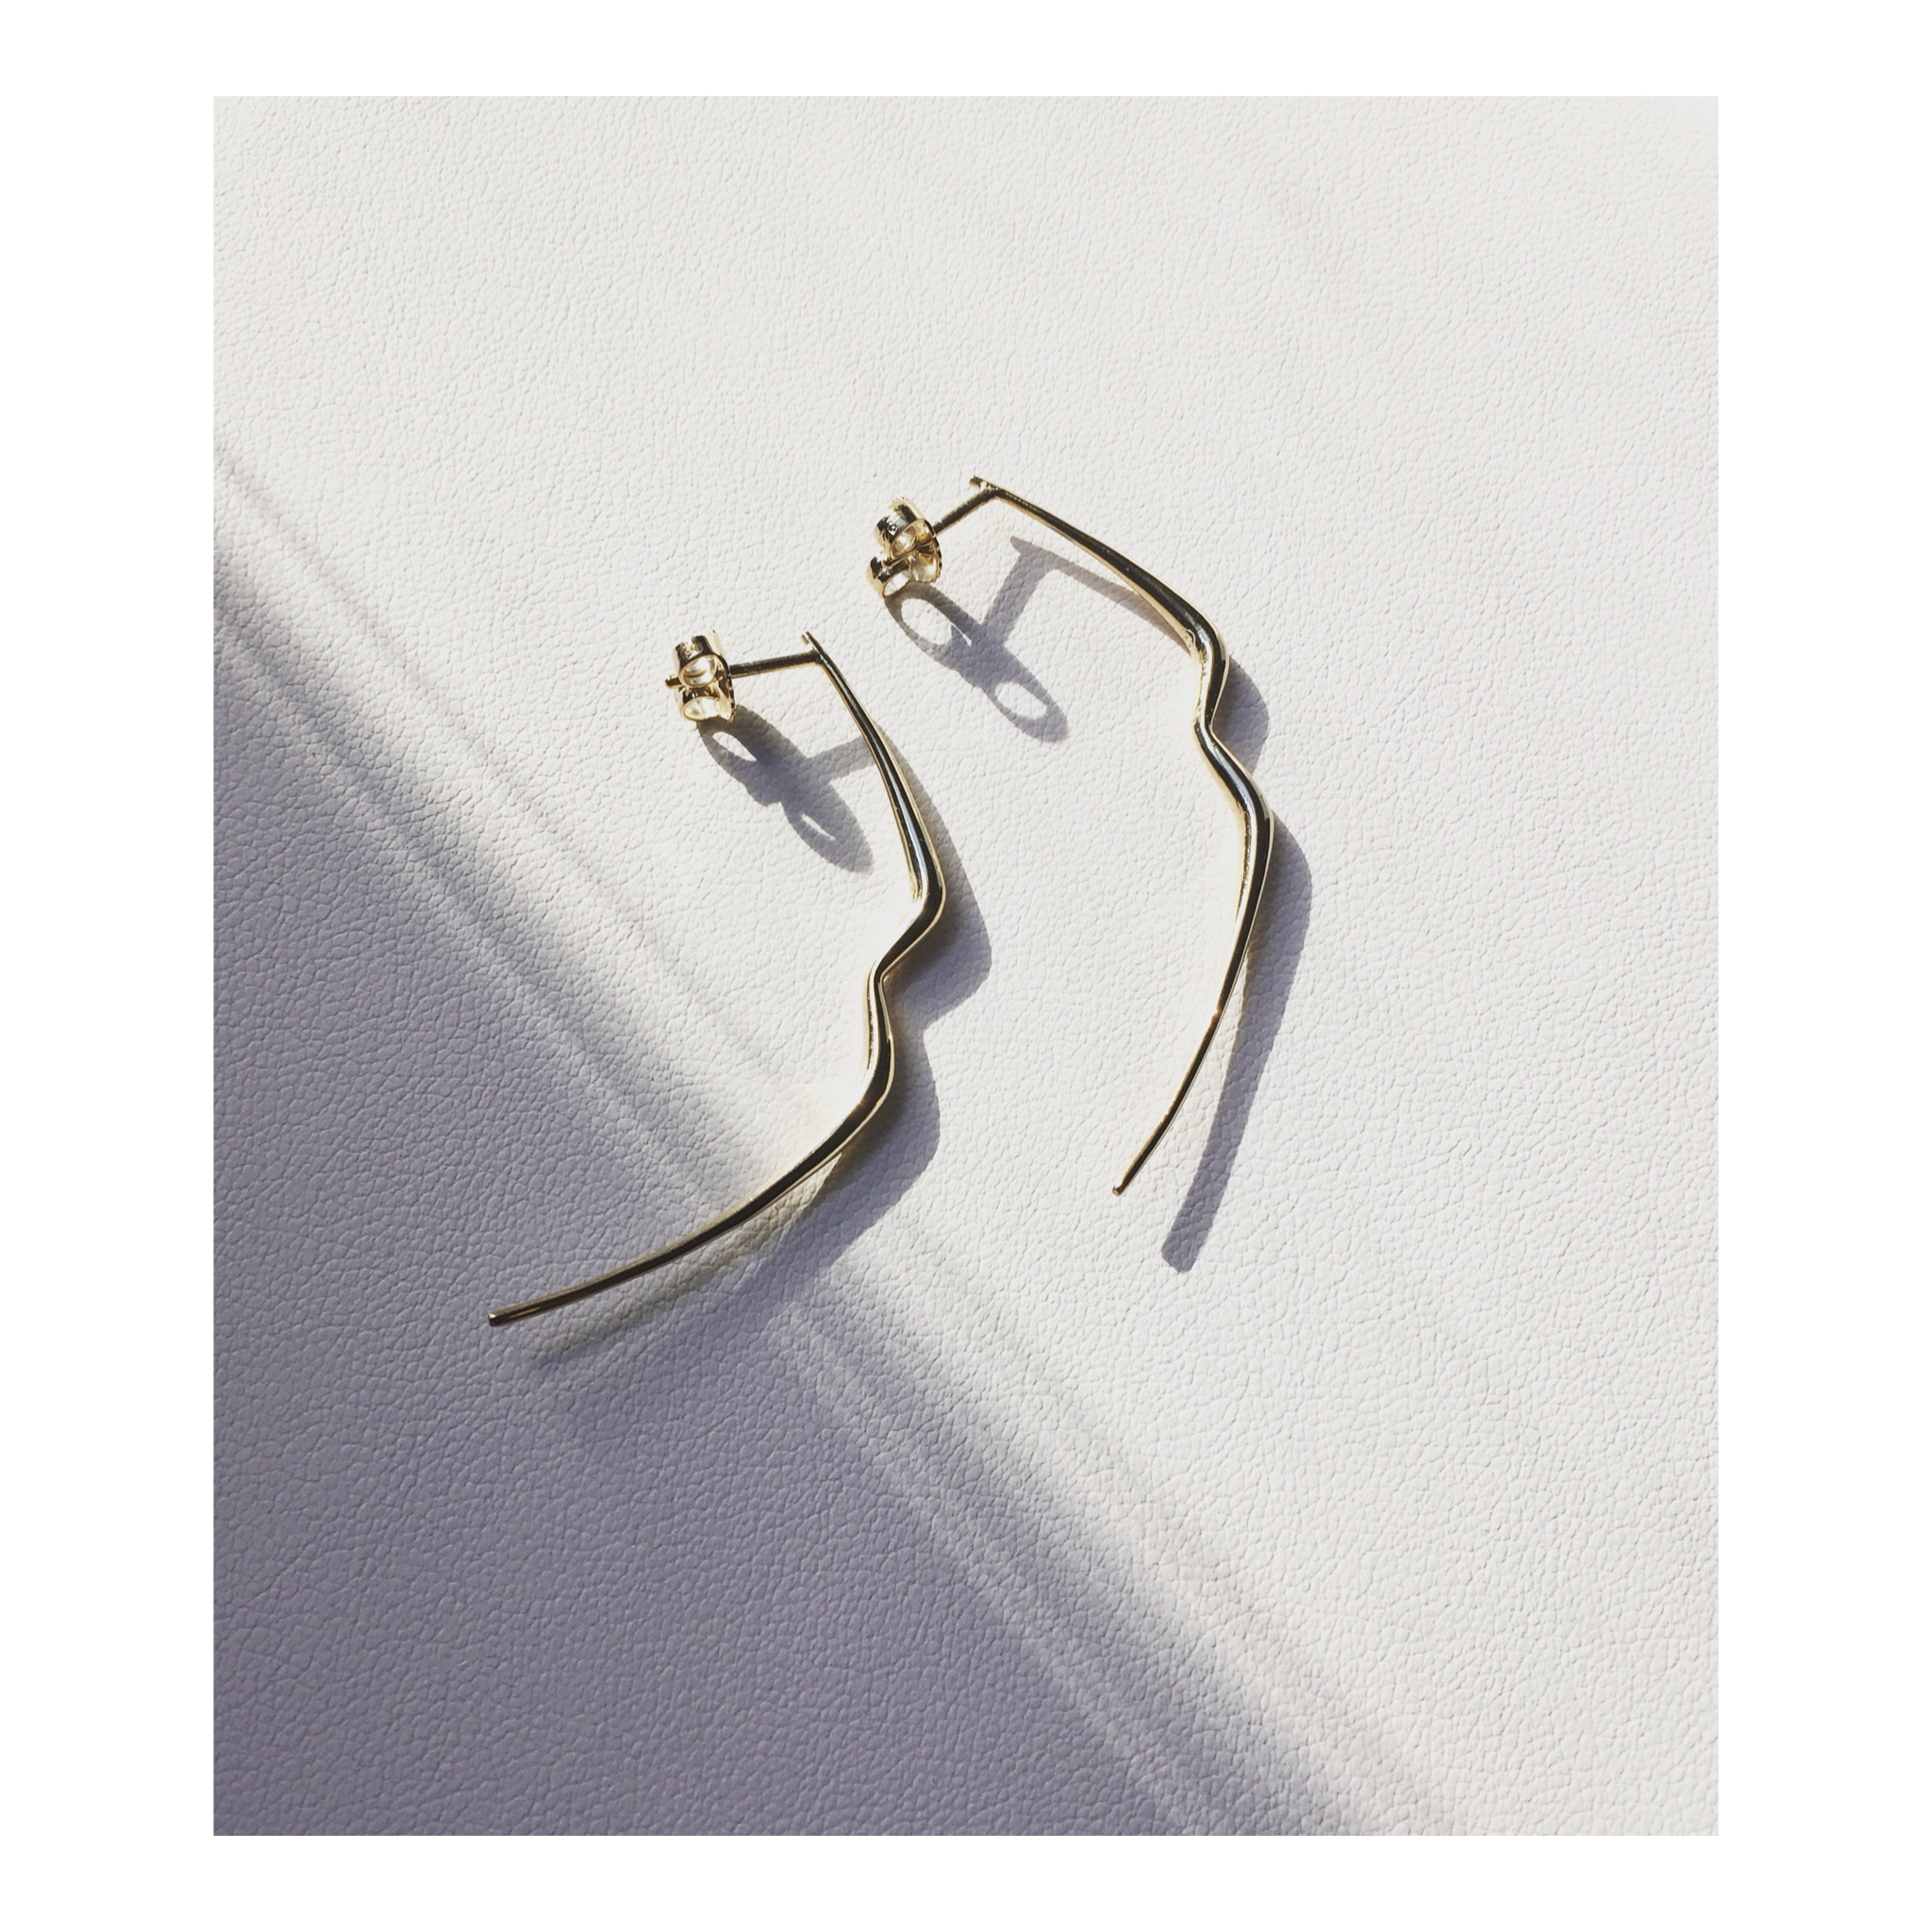 Gold Earrings  Taste  with No pearls option